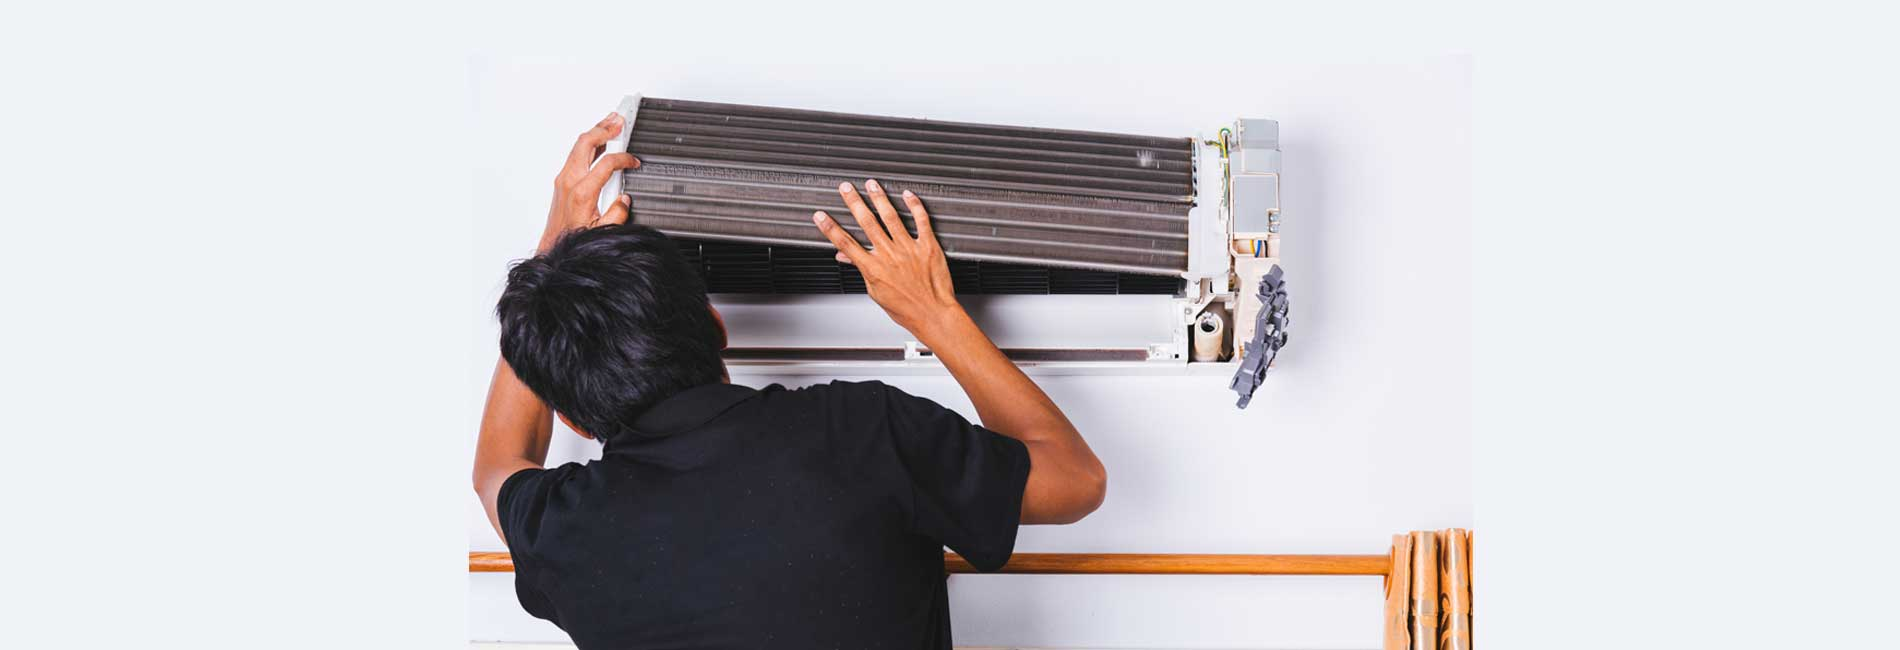 Air Conditioner Repair in Thirumazhisai